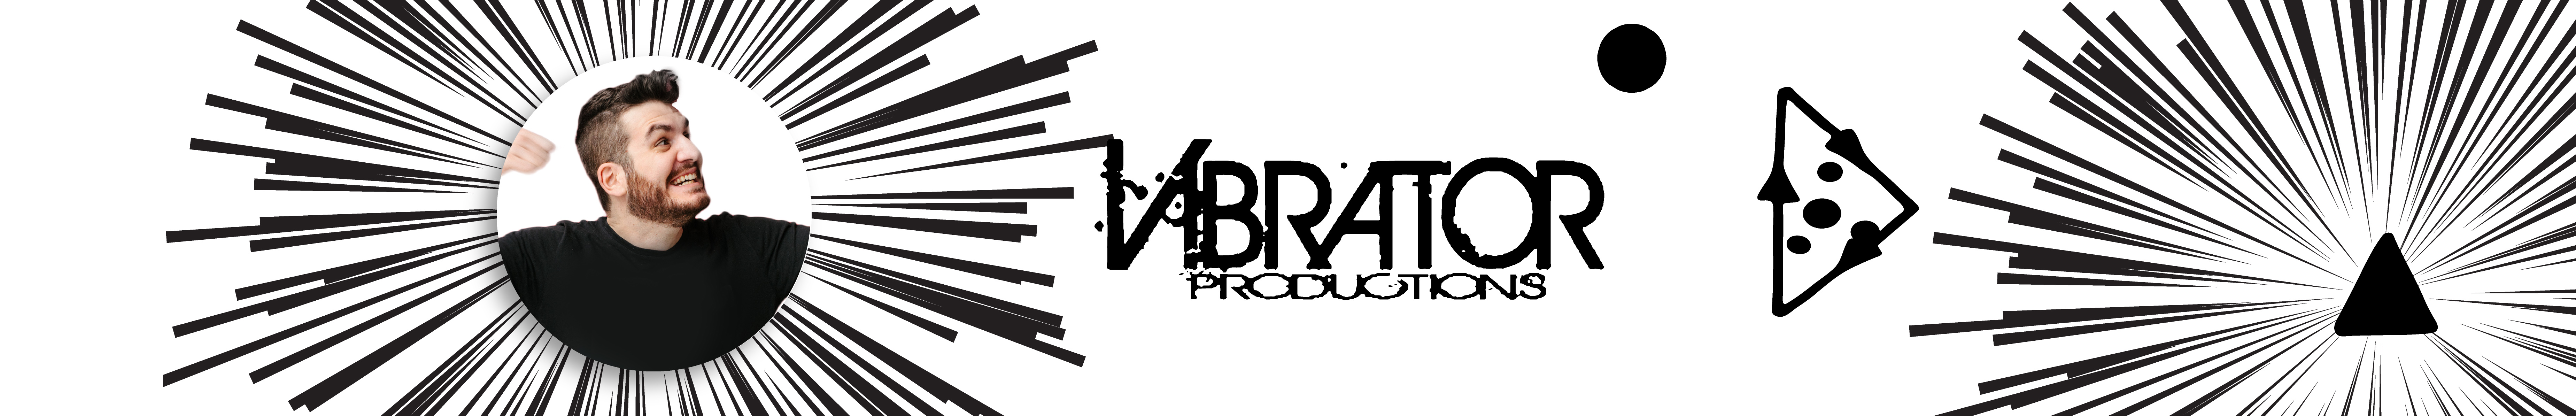 Vibrator Productions